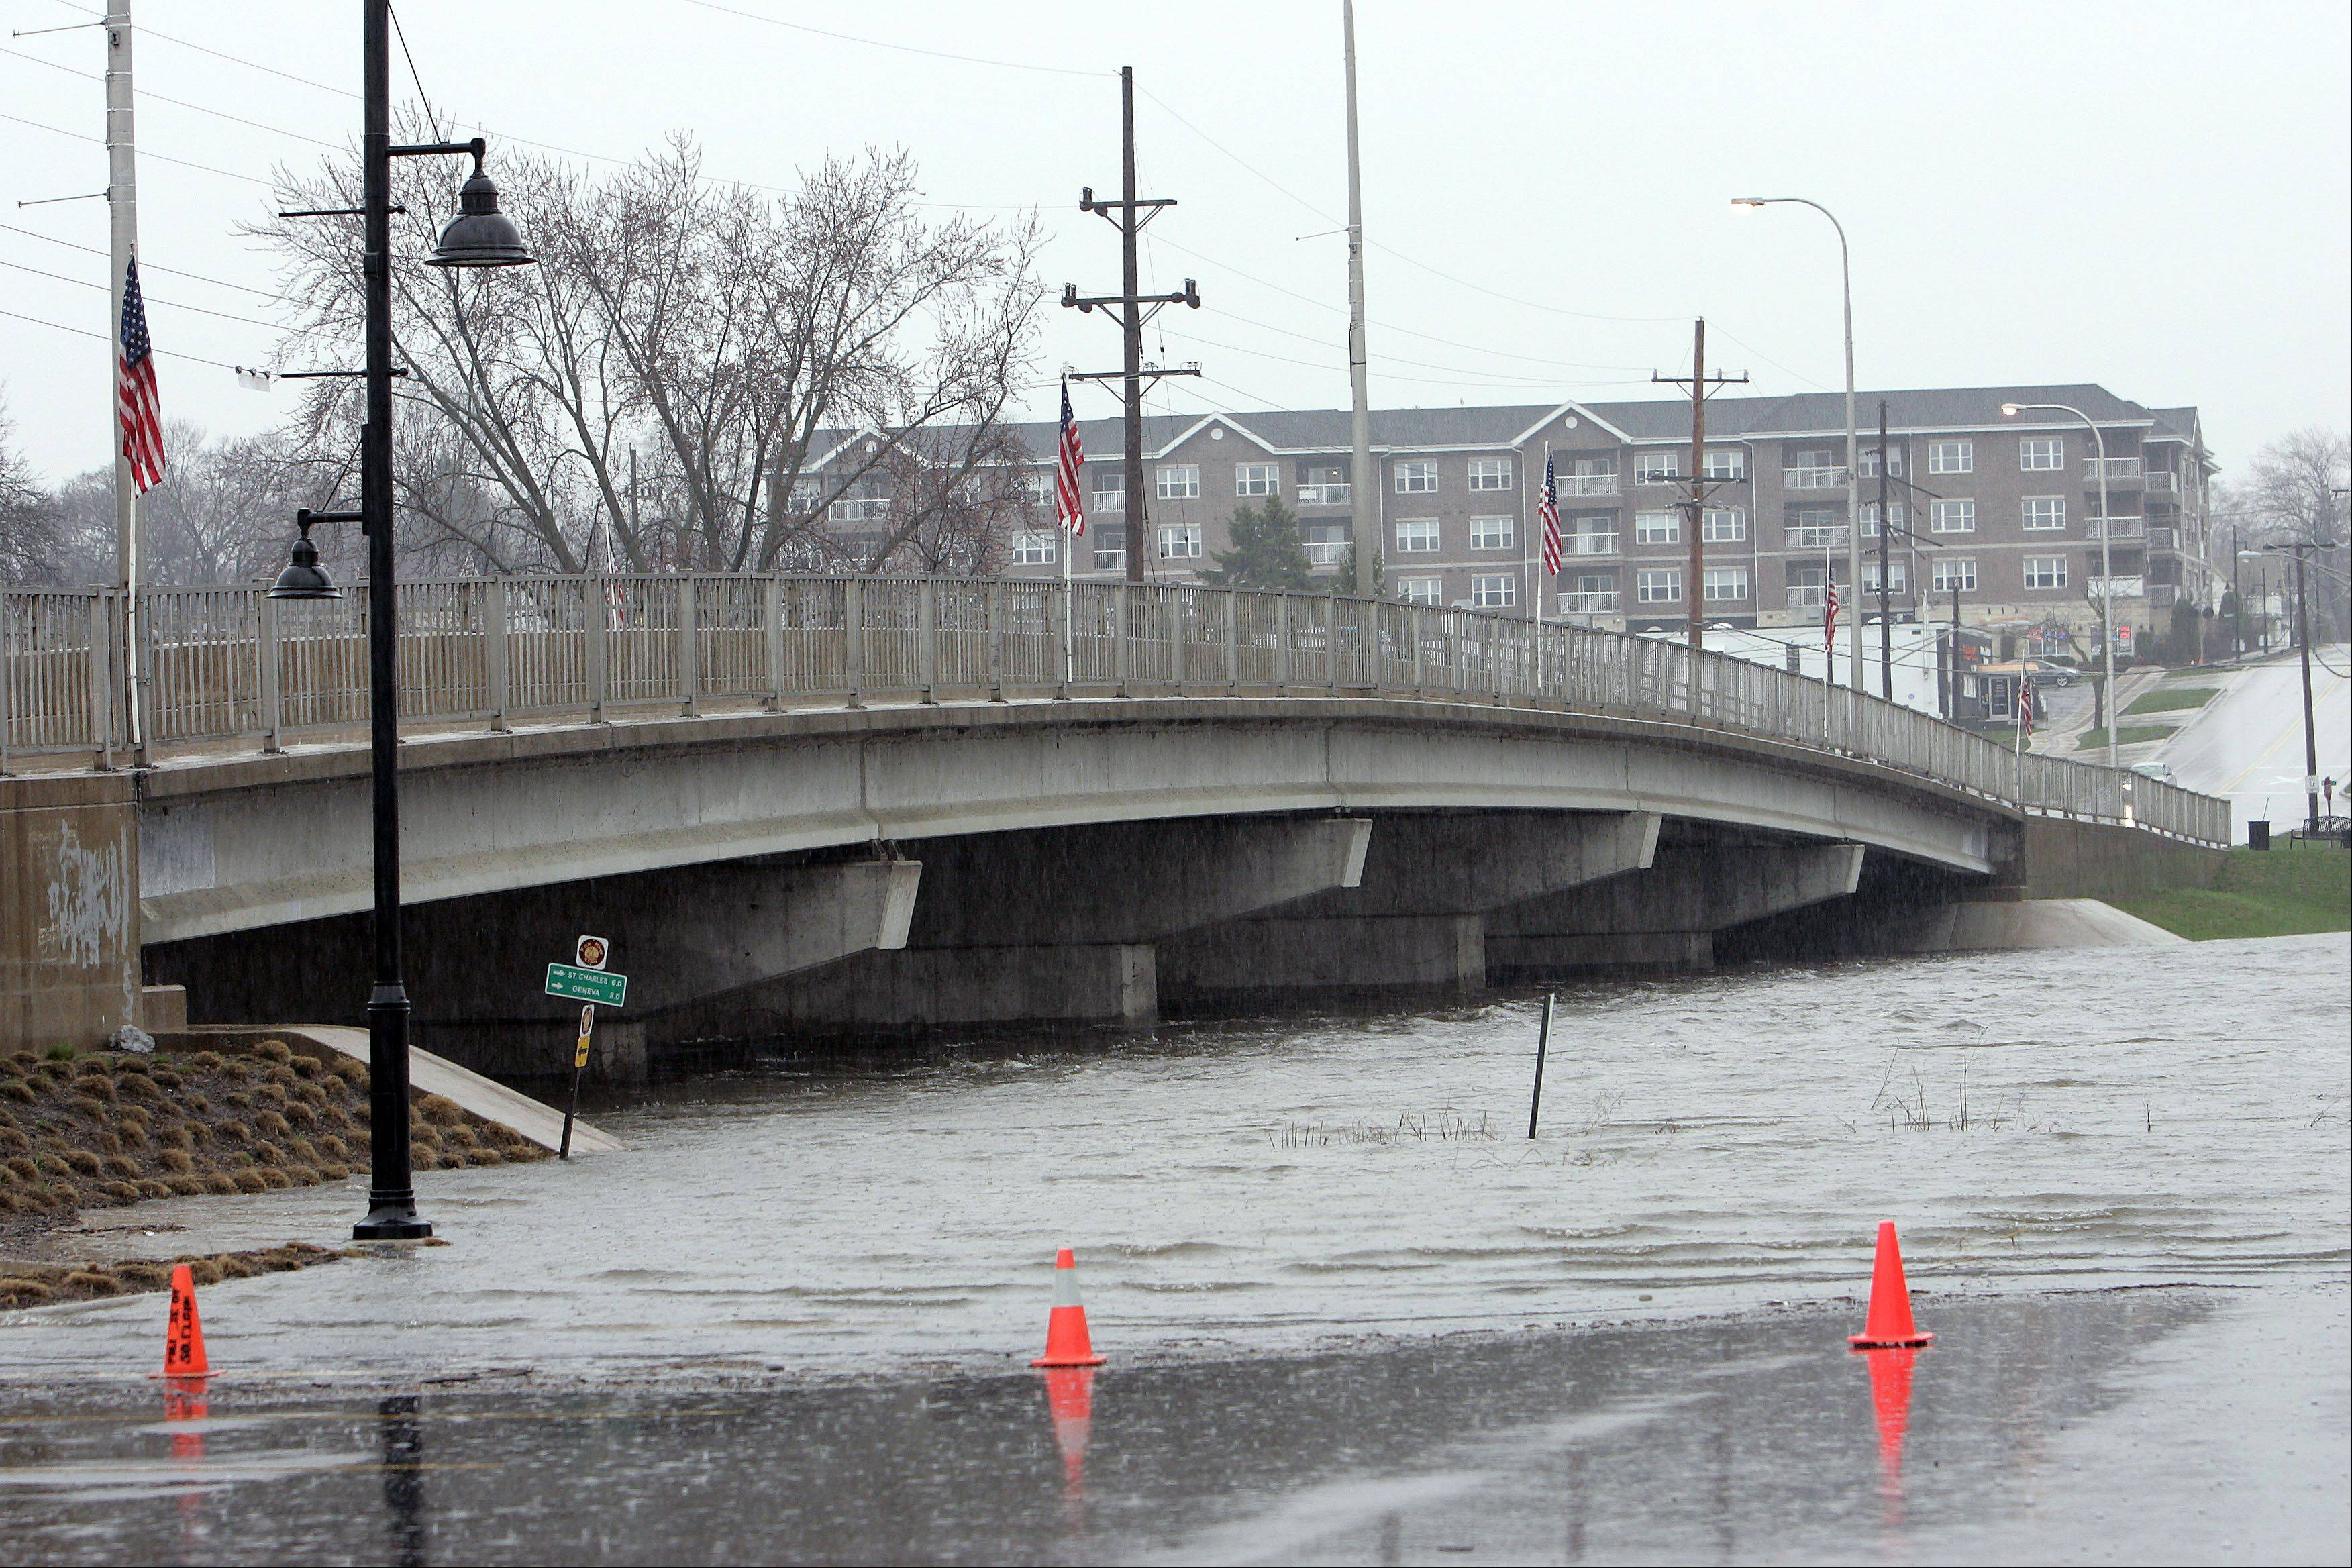 Water continues to rise on the Fox River at the bridge in South Elgin.